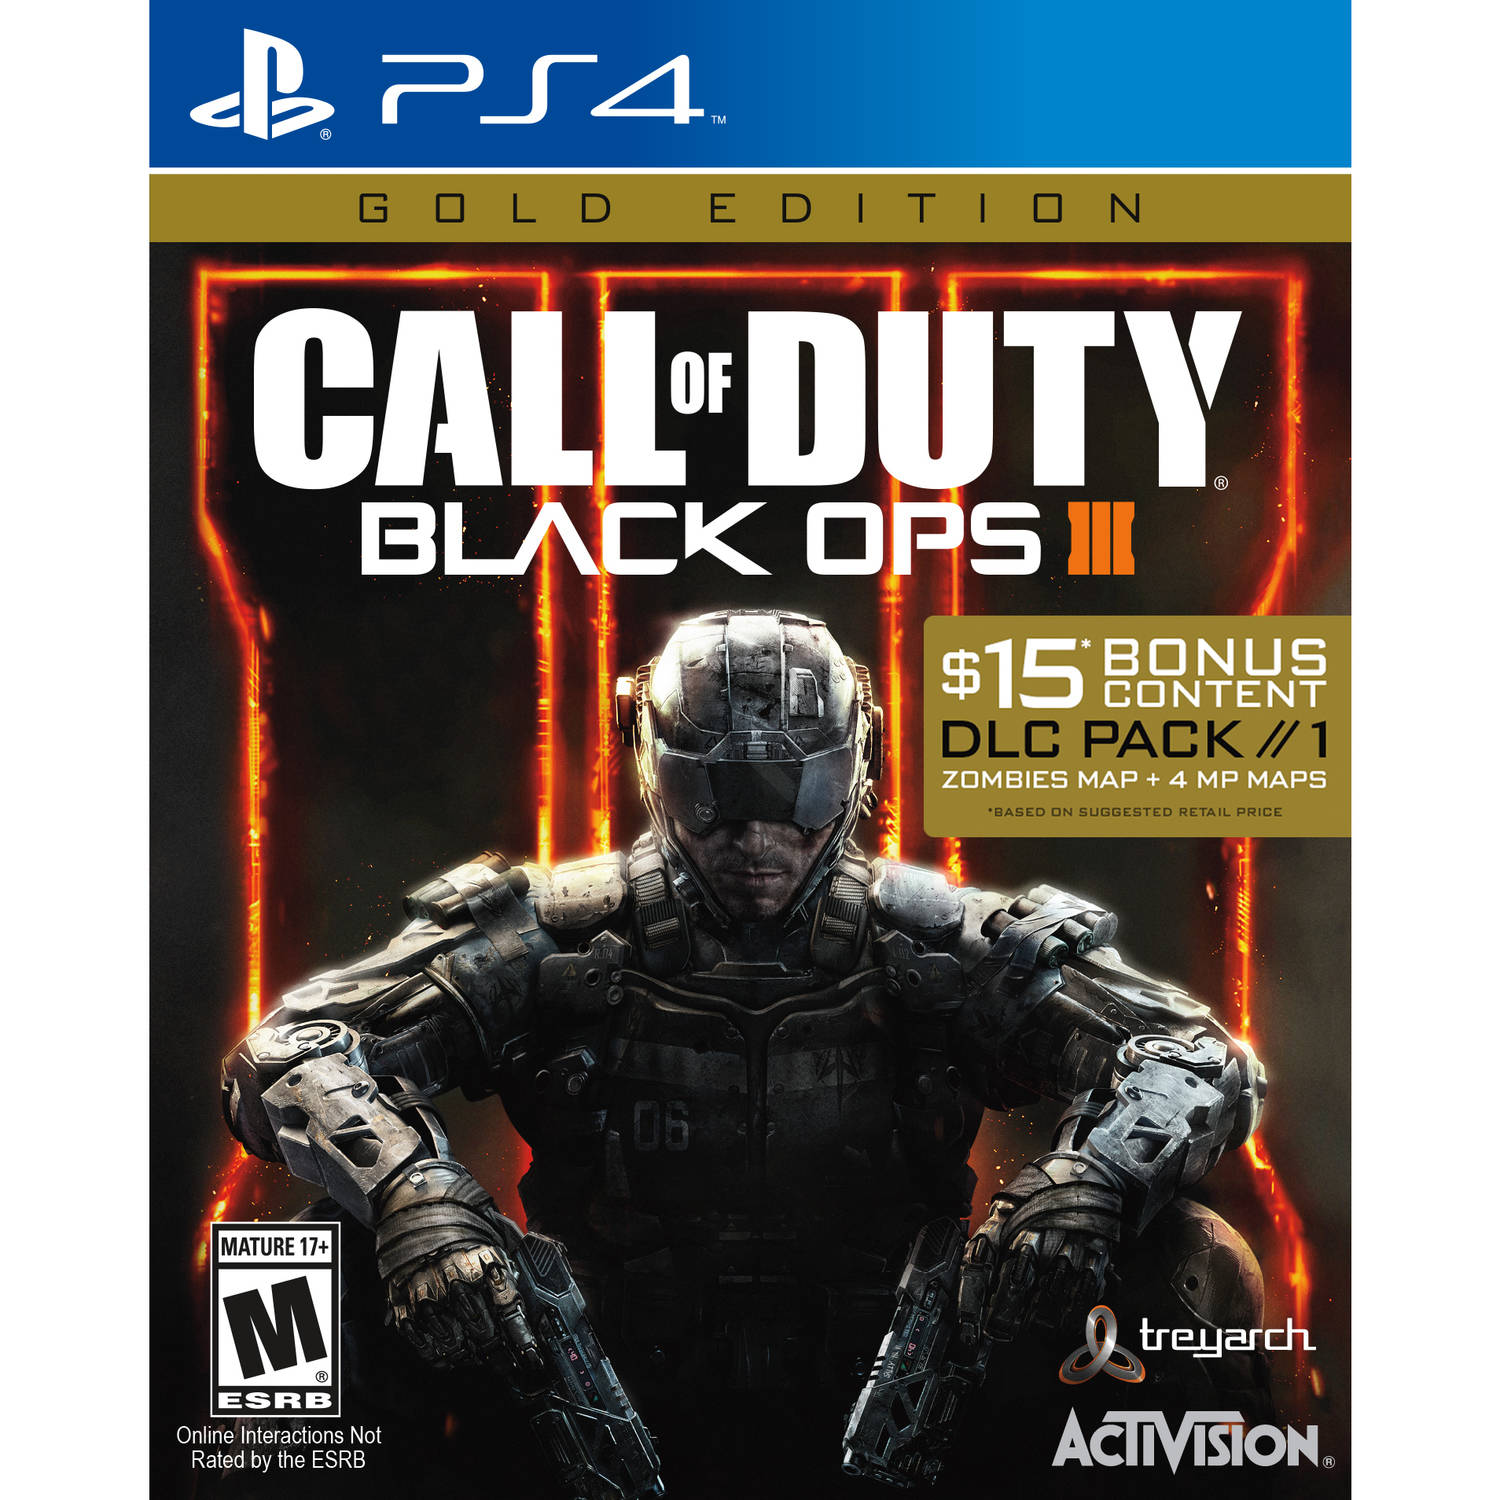 Call of Duty Black Ops 3 Gold Edition w/ DLC (PS4)